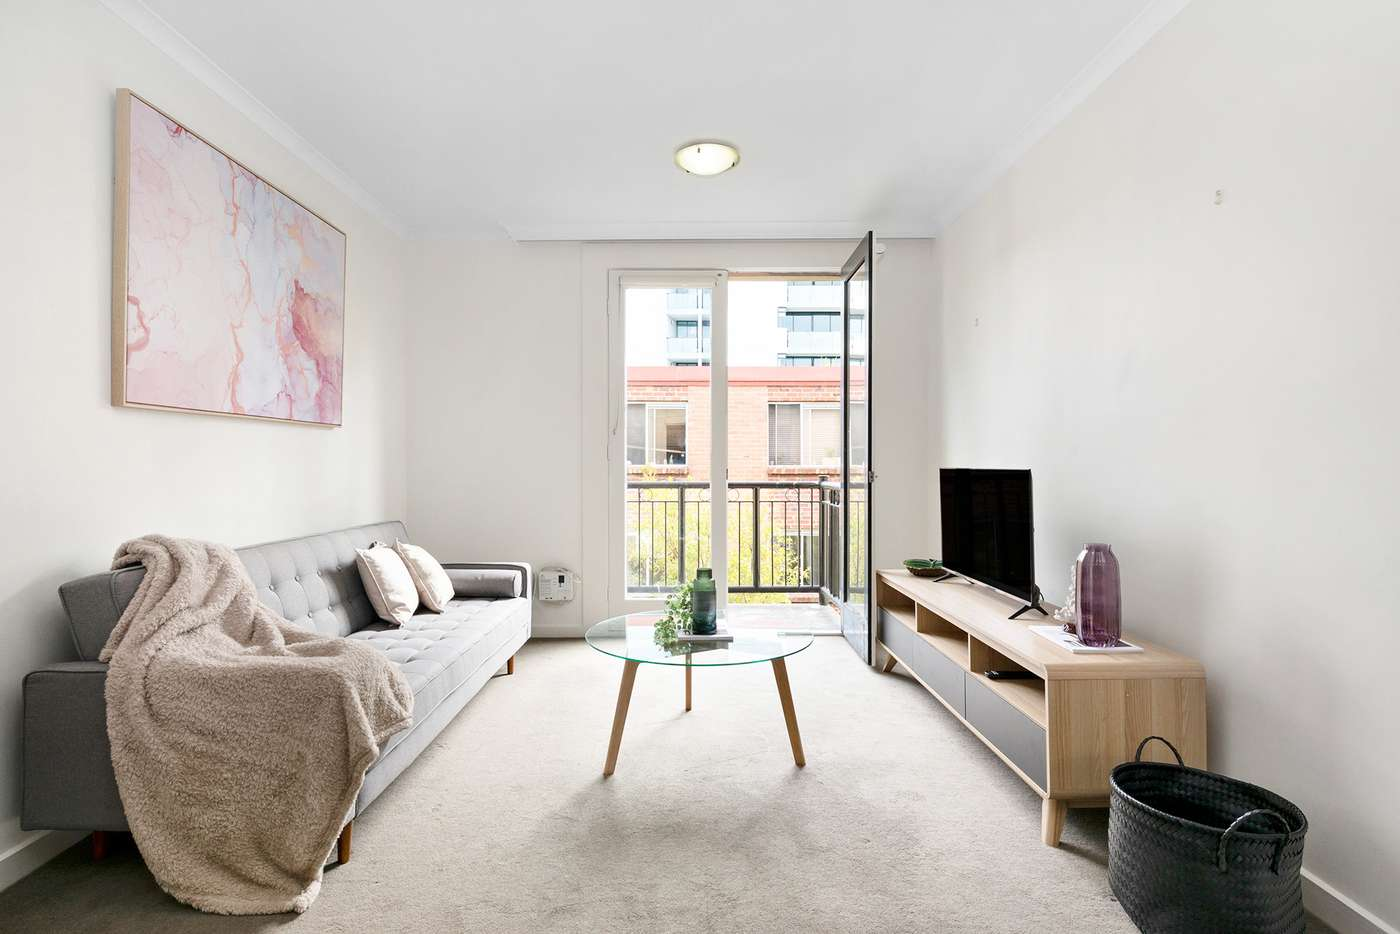 Main view of Homely apartment listing, 202 The Avenue, Parkville VIC 3052